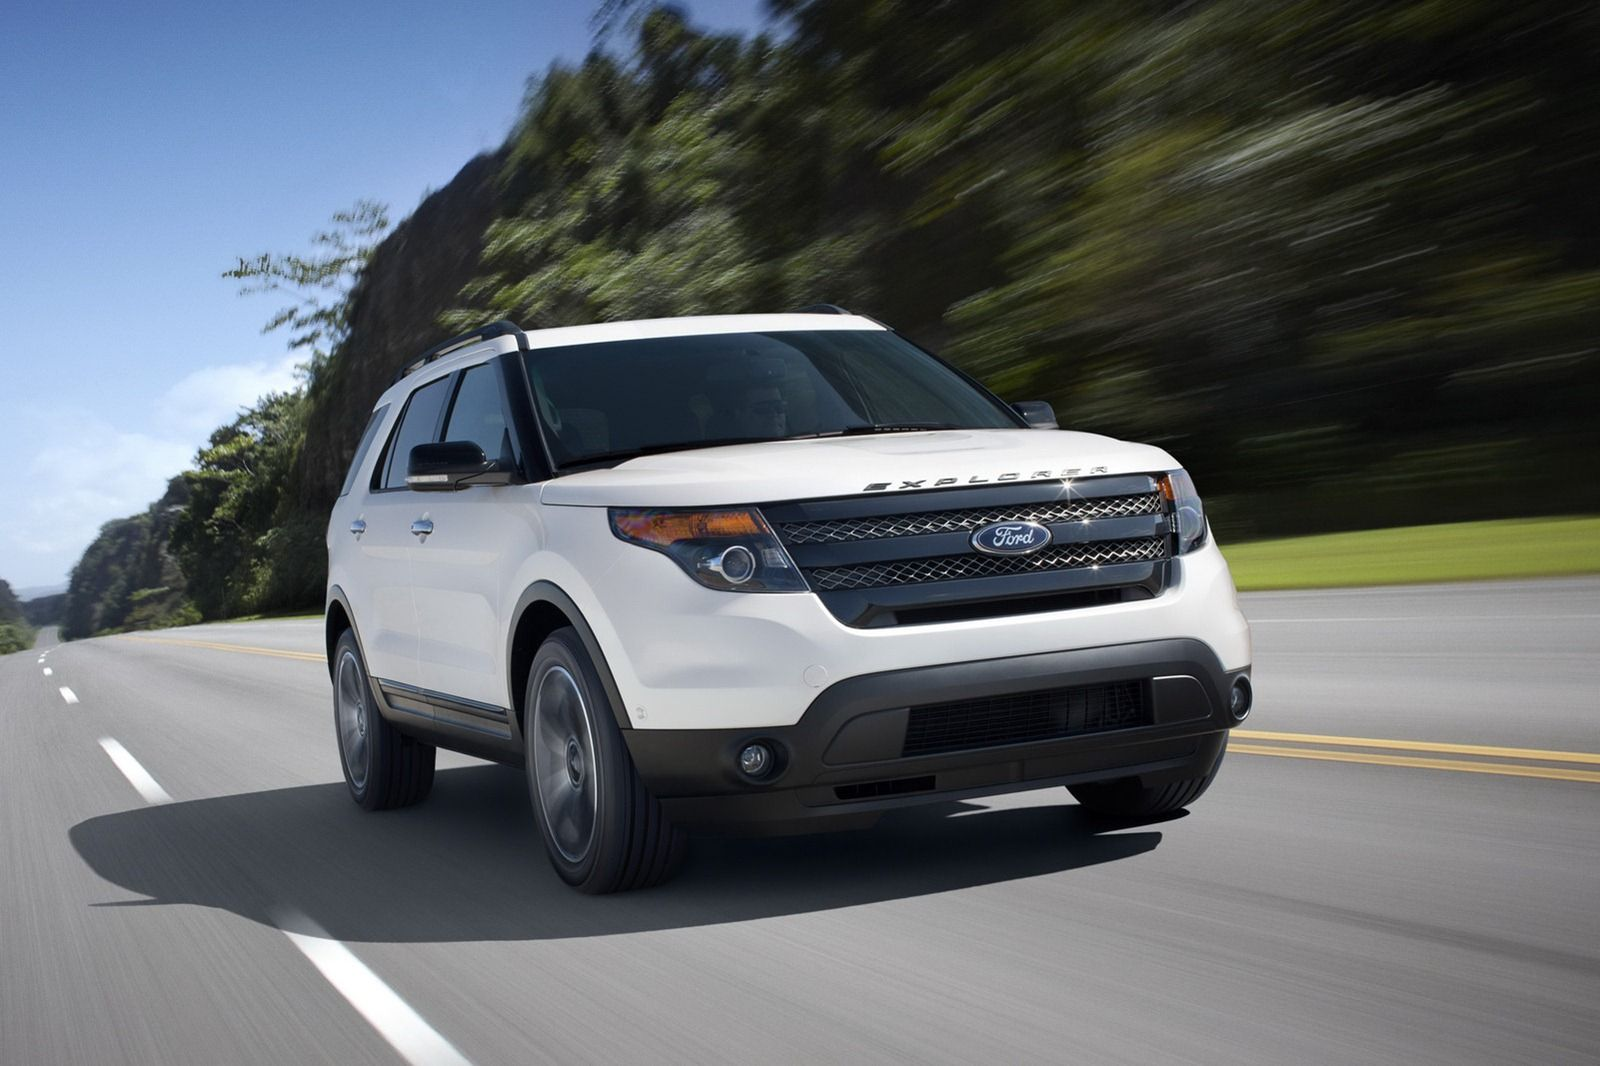 2013 ford explorer best hd wallpaper